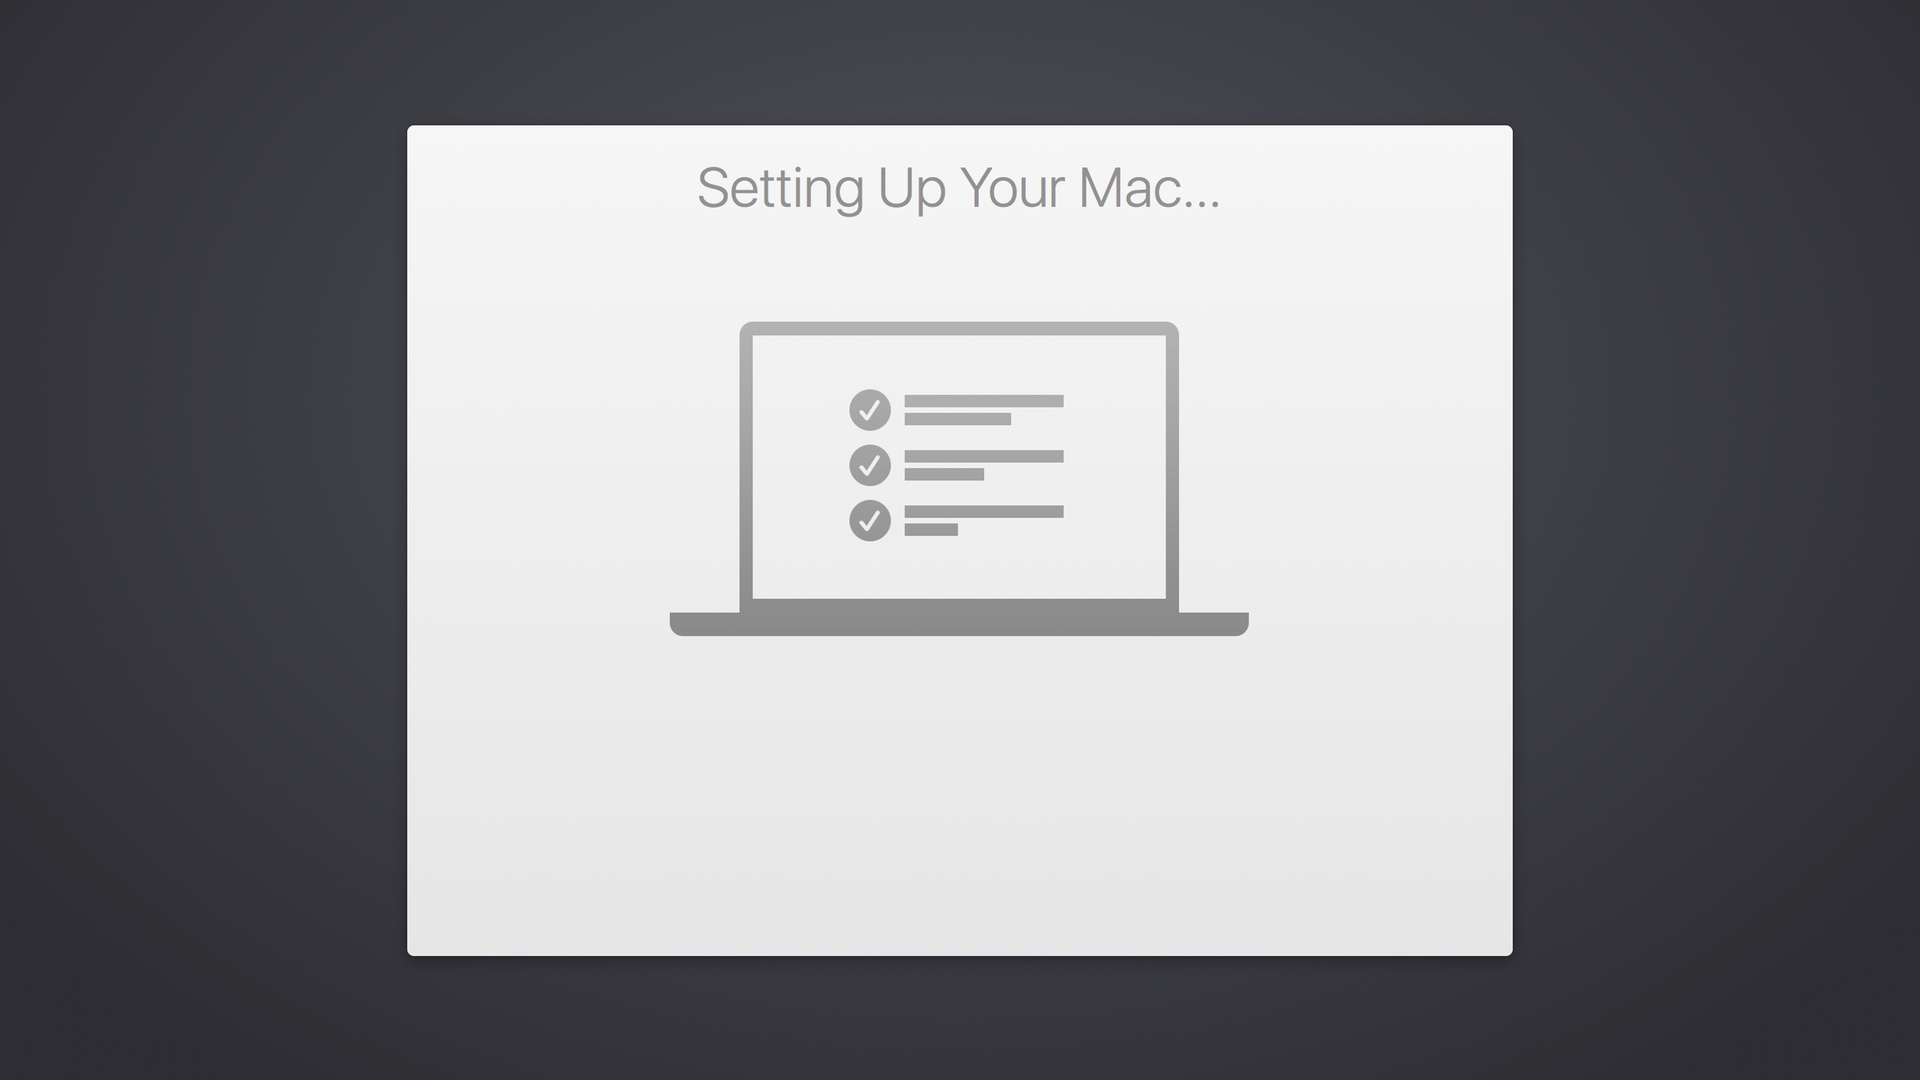 Setting Up Your Mac Tips for the First Time